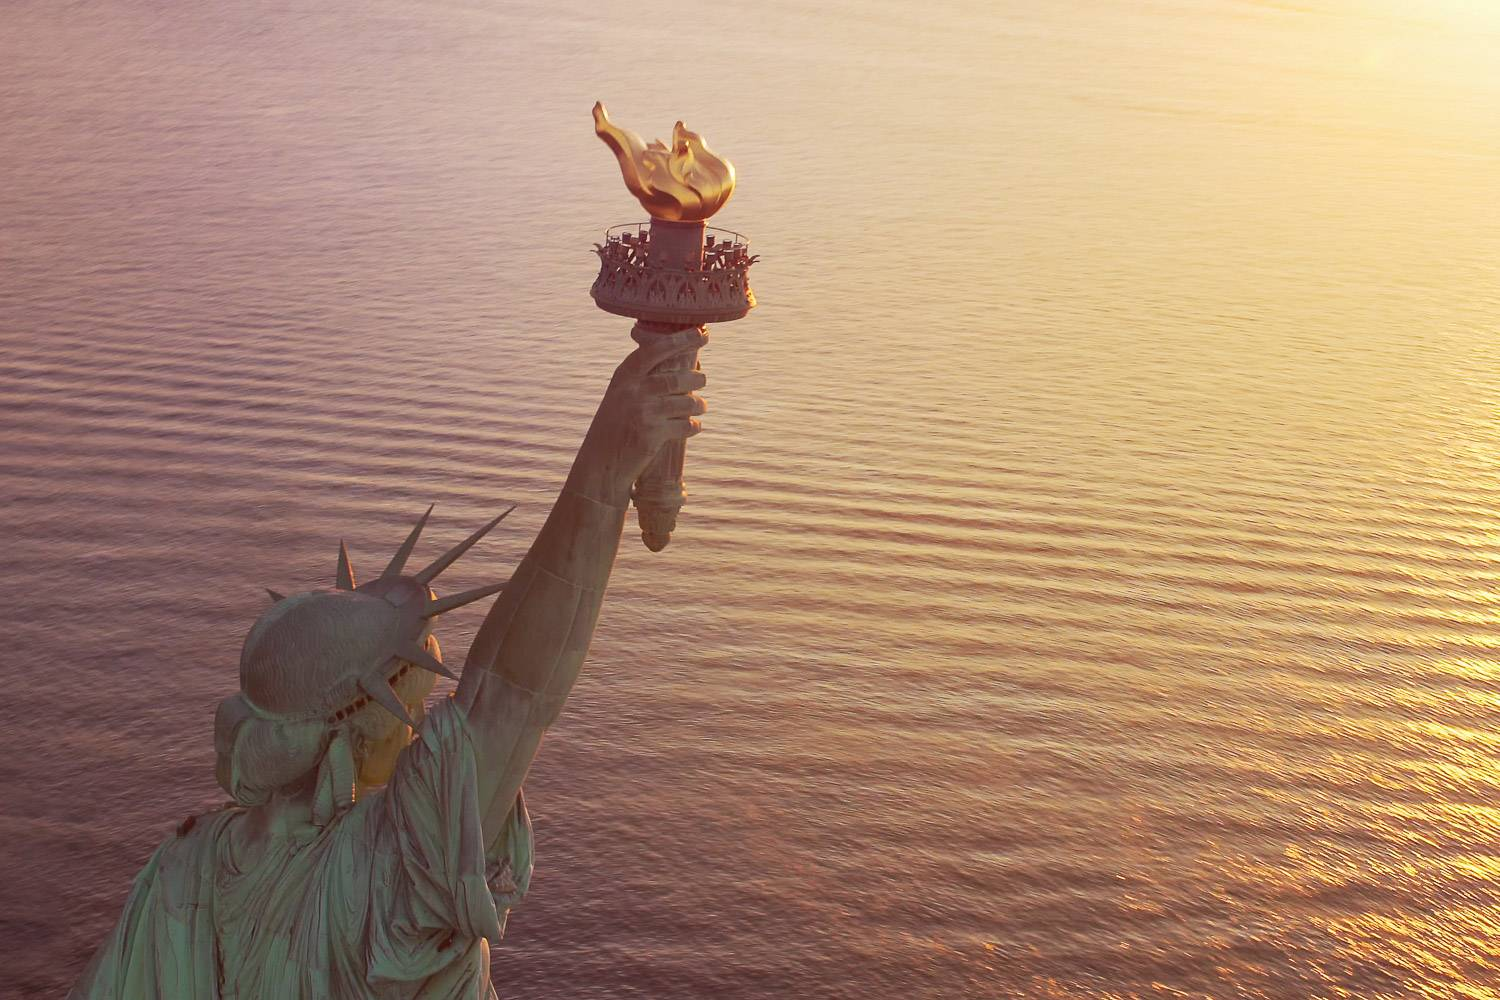 Image of the Statue of Liberty with golden torch above the water close up at sunset